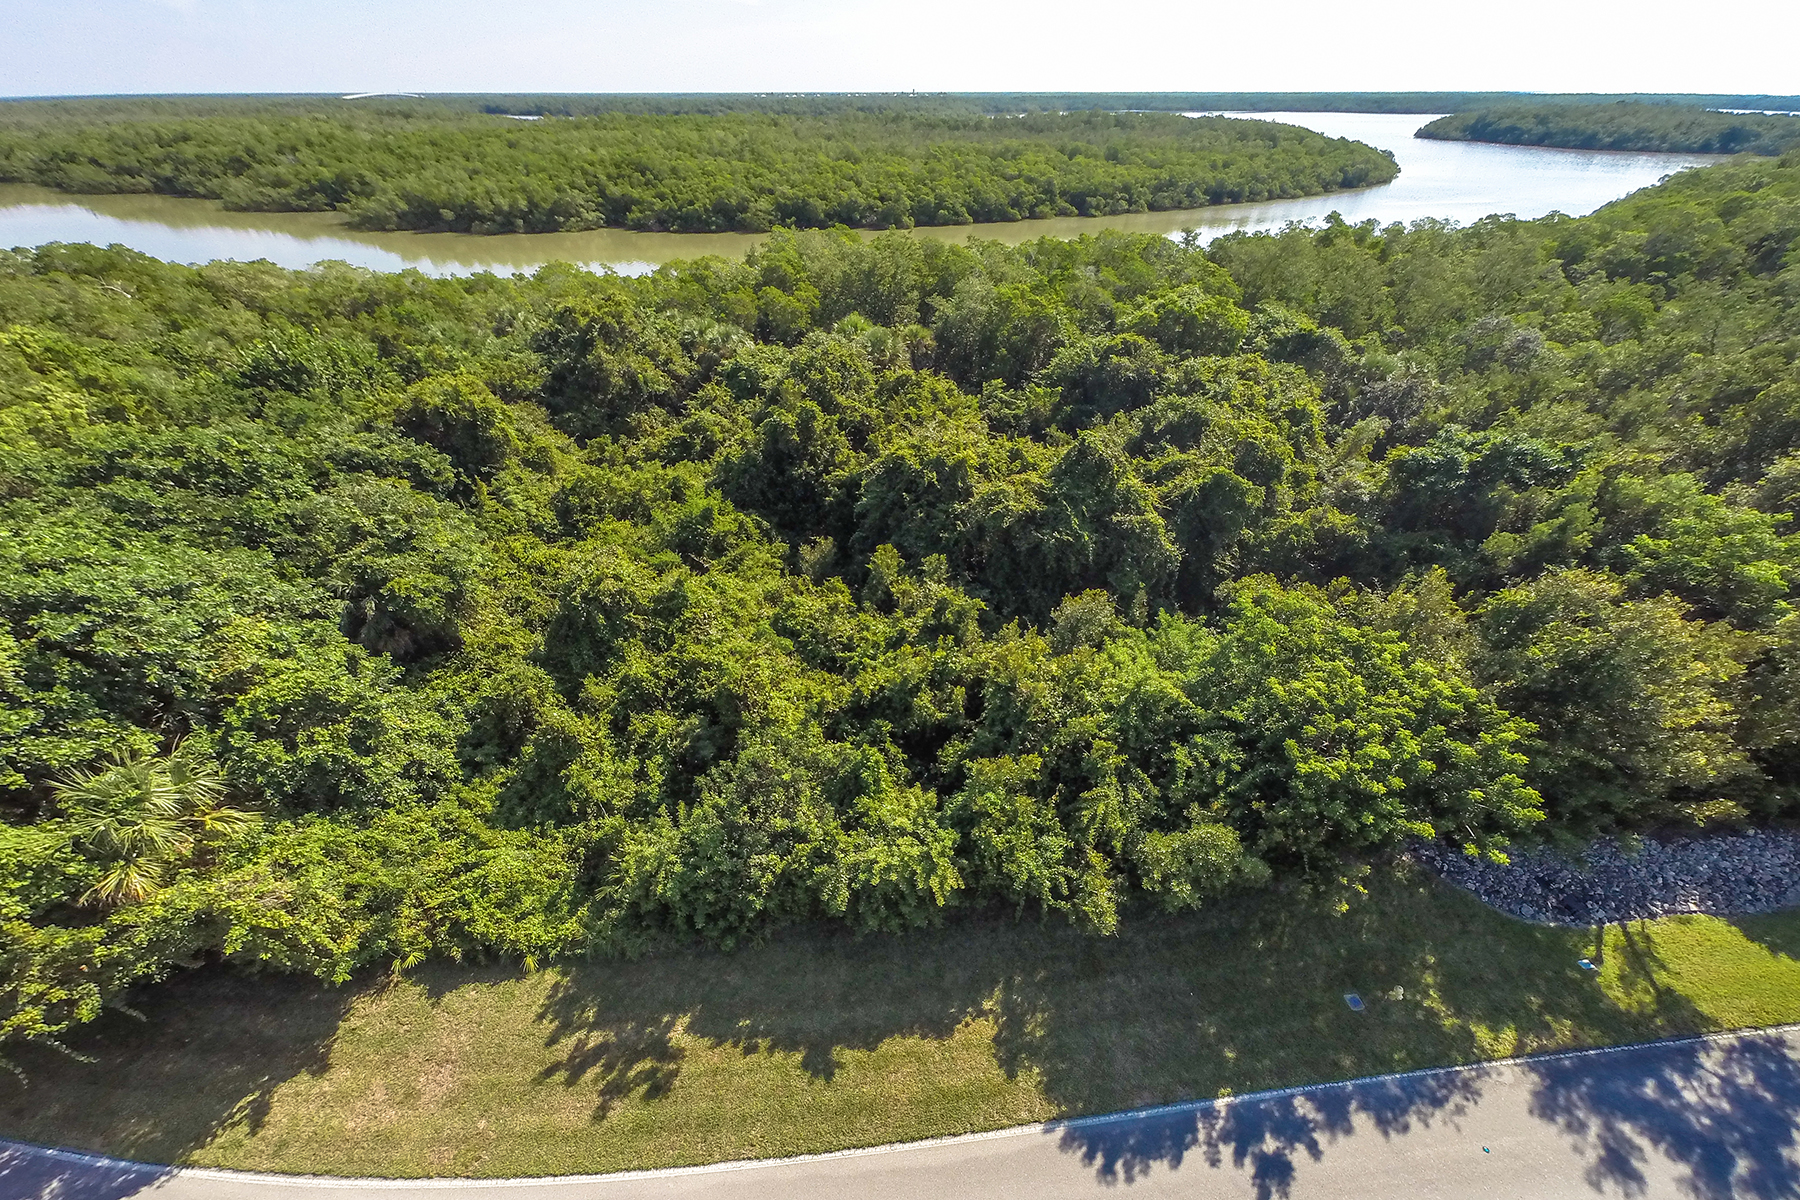 Land for Sale at MARCO ISLAND - KEY MARCO 762 Whiskey Creek Dr Marco Island, Florida 34145 United States